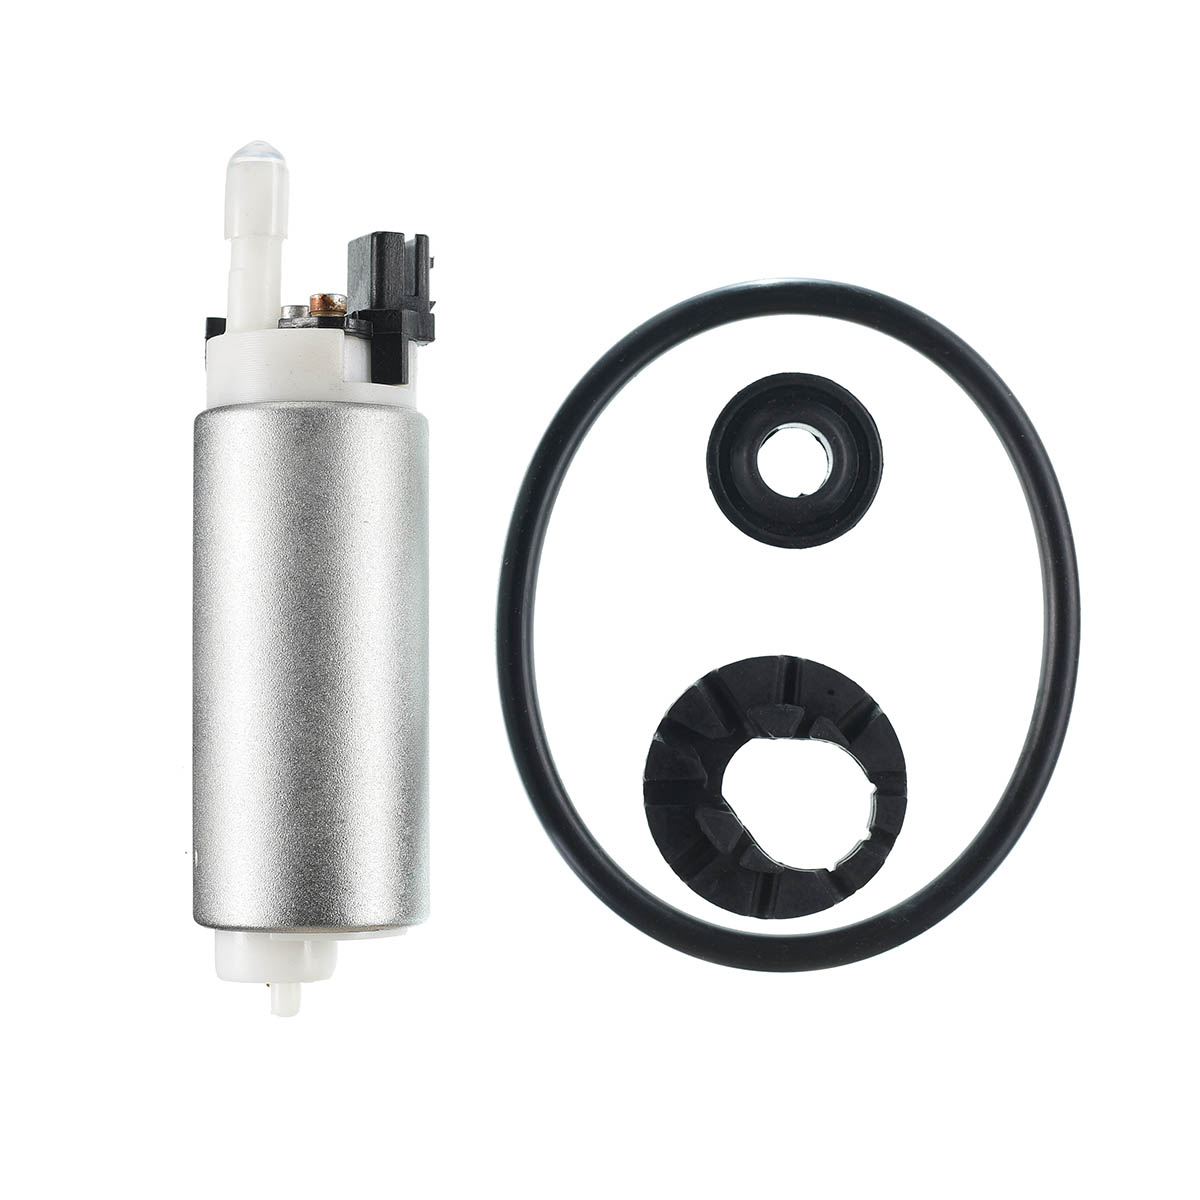 small resolution of fuel pump for chevrolet beretta cavalier corsica oldsmobile achieva pontiac grand am sunbird buick skylark 92 95 25028921 e3313